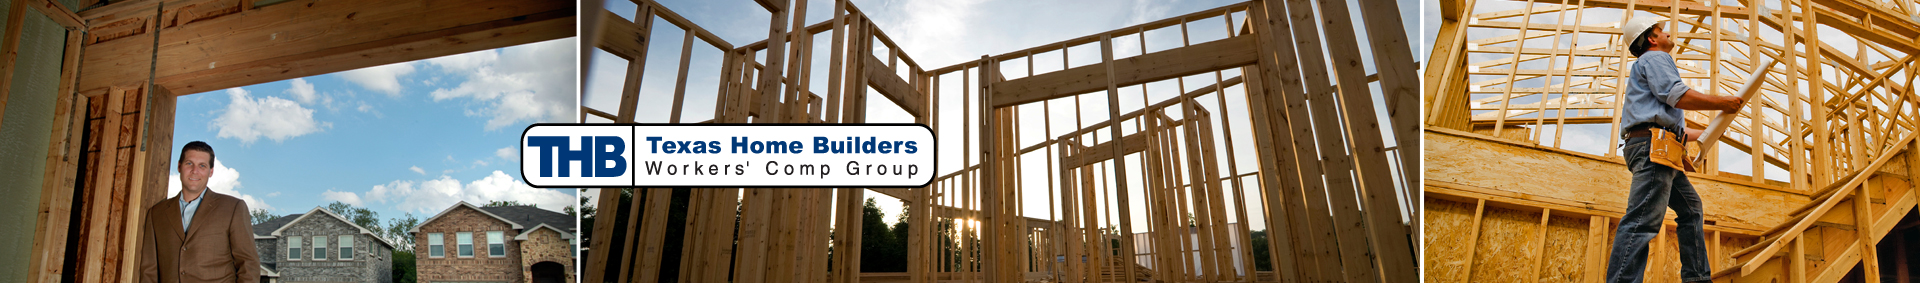 Texas Home Builders Workers Comp Group